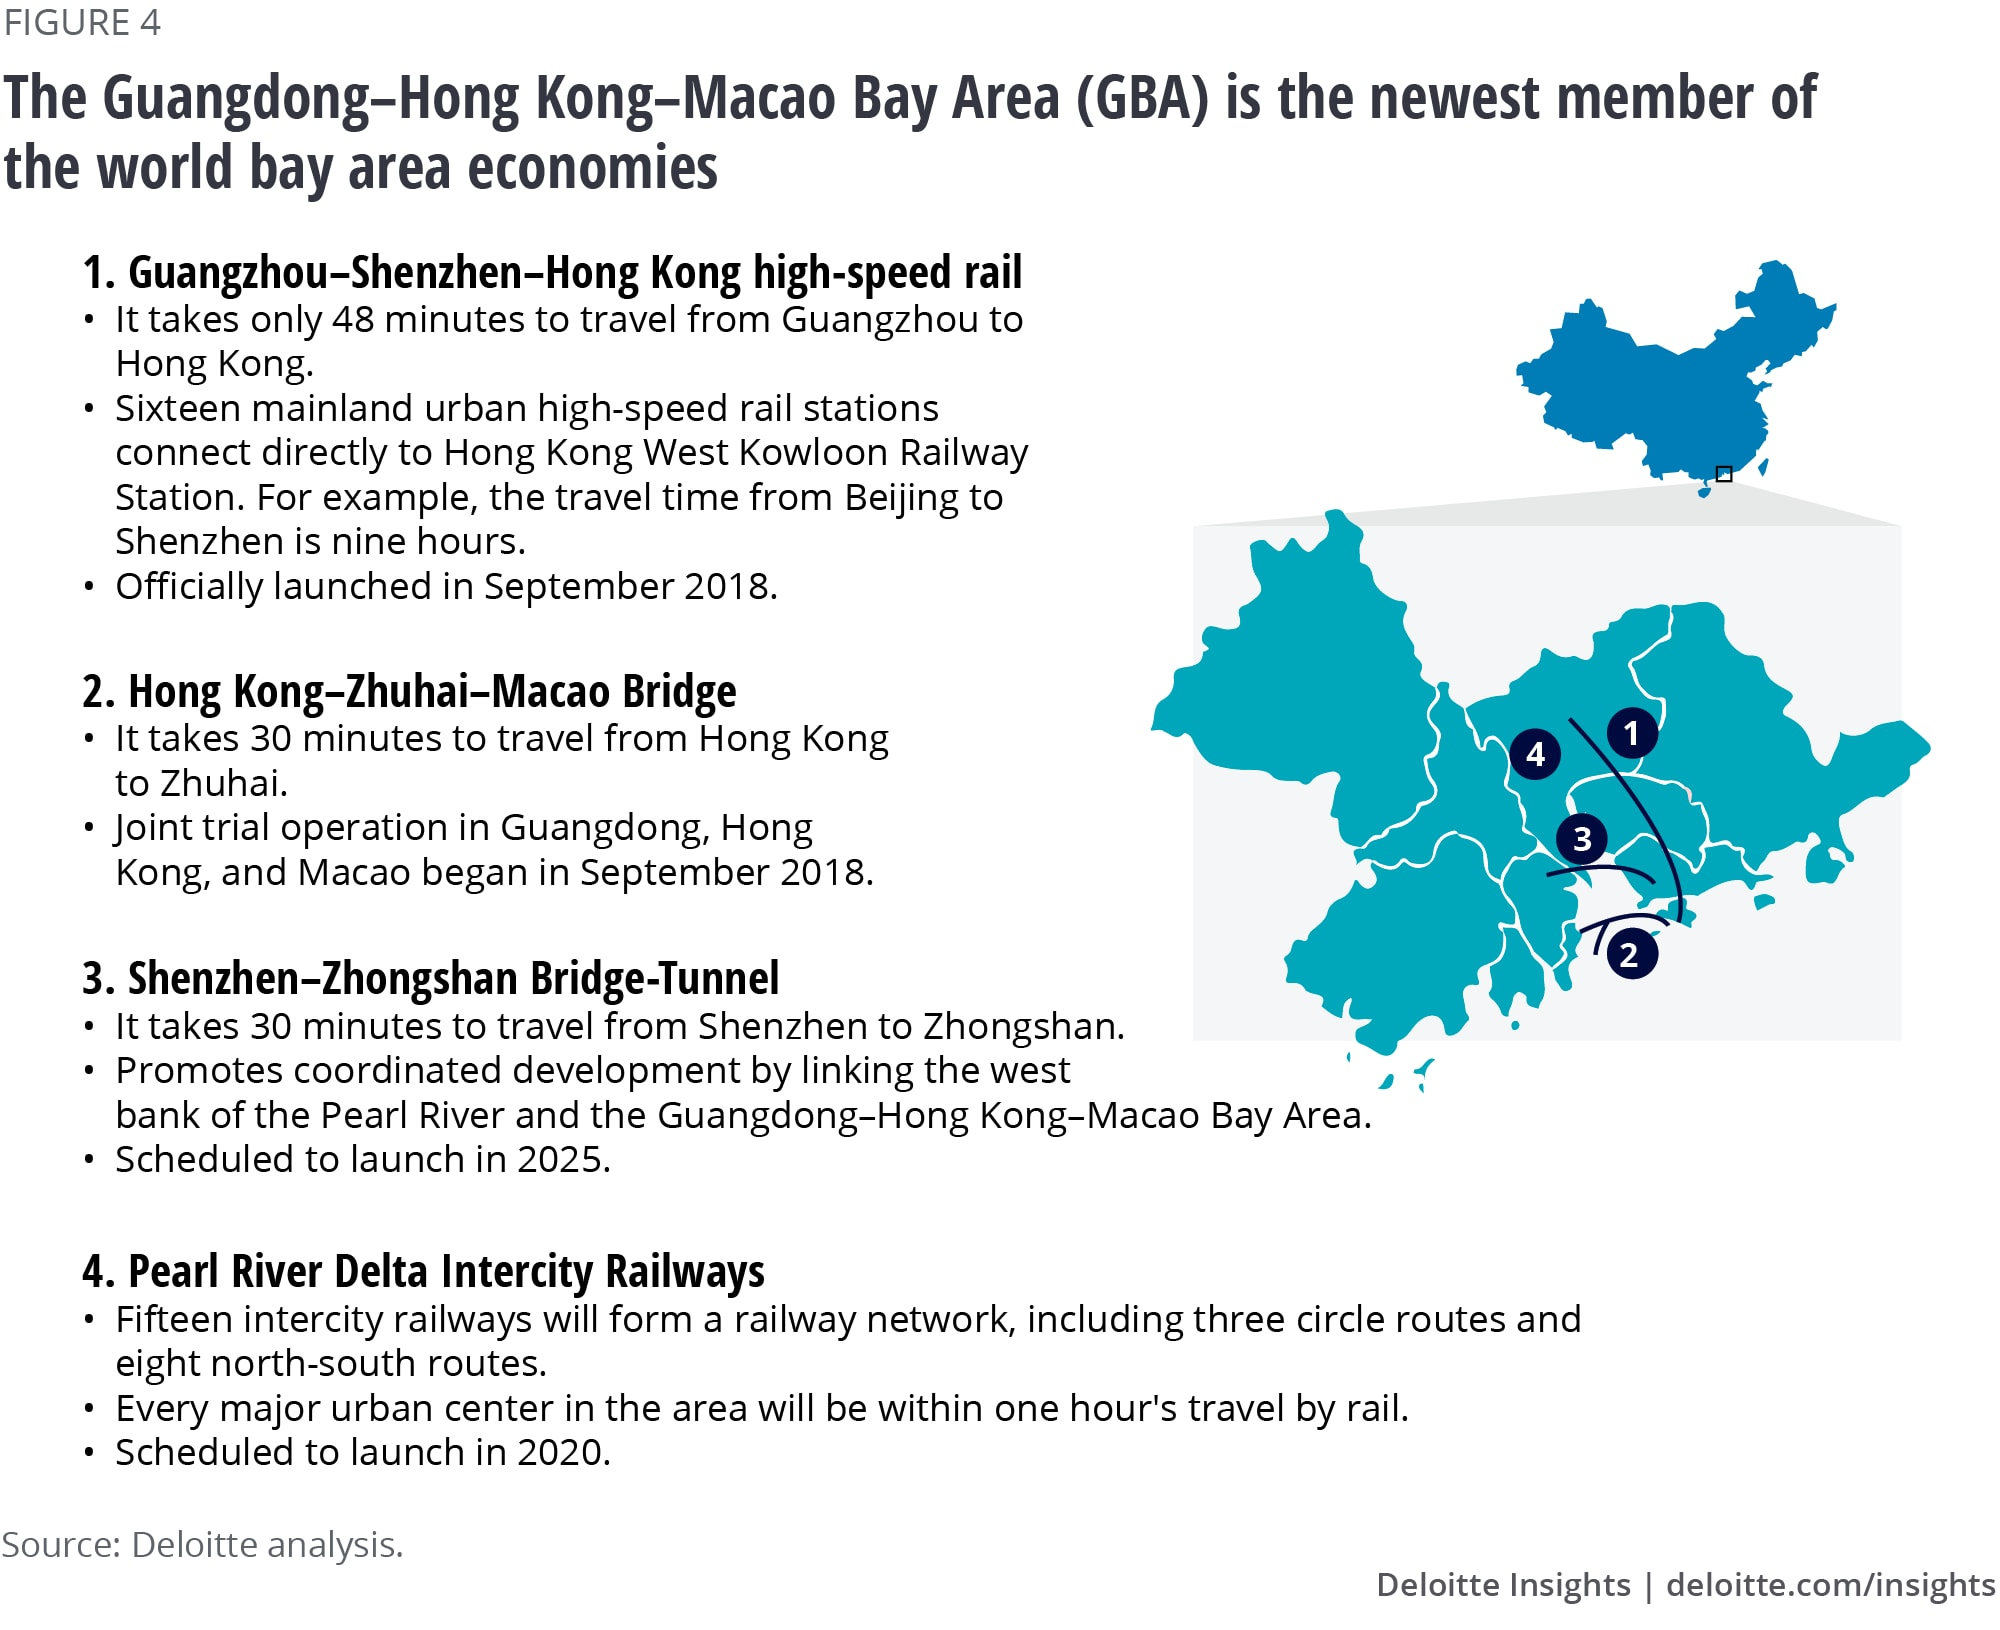 The Guangdong–Hong Kong–Macao Bay Area (GBA) is the newest member of the world bay area economies